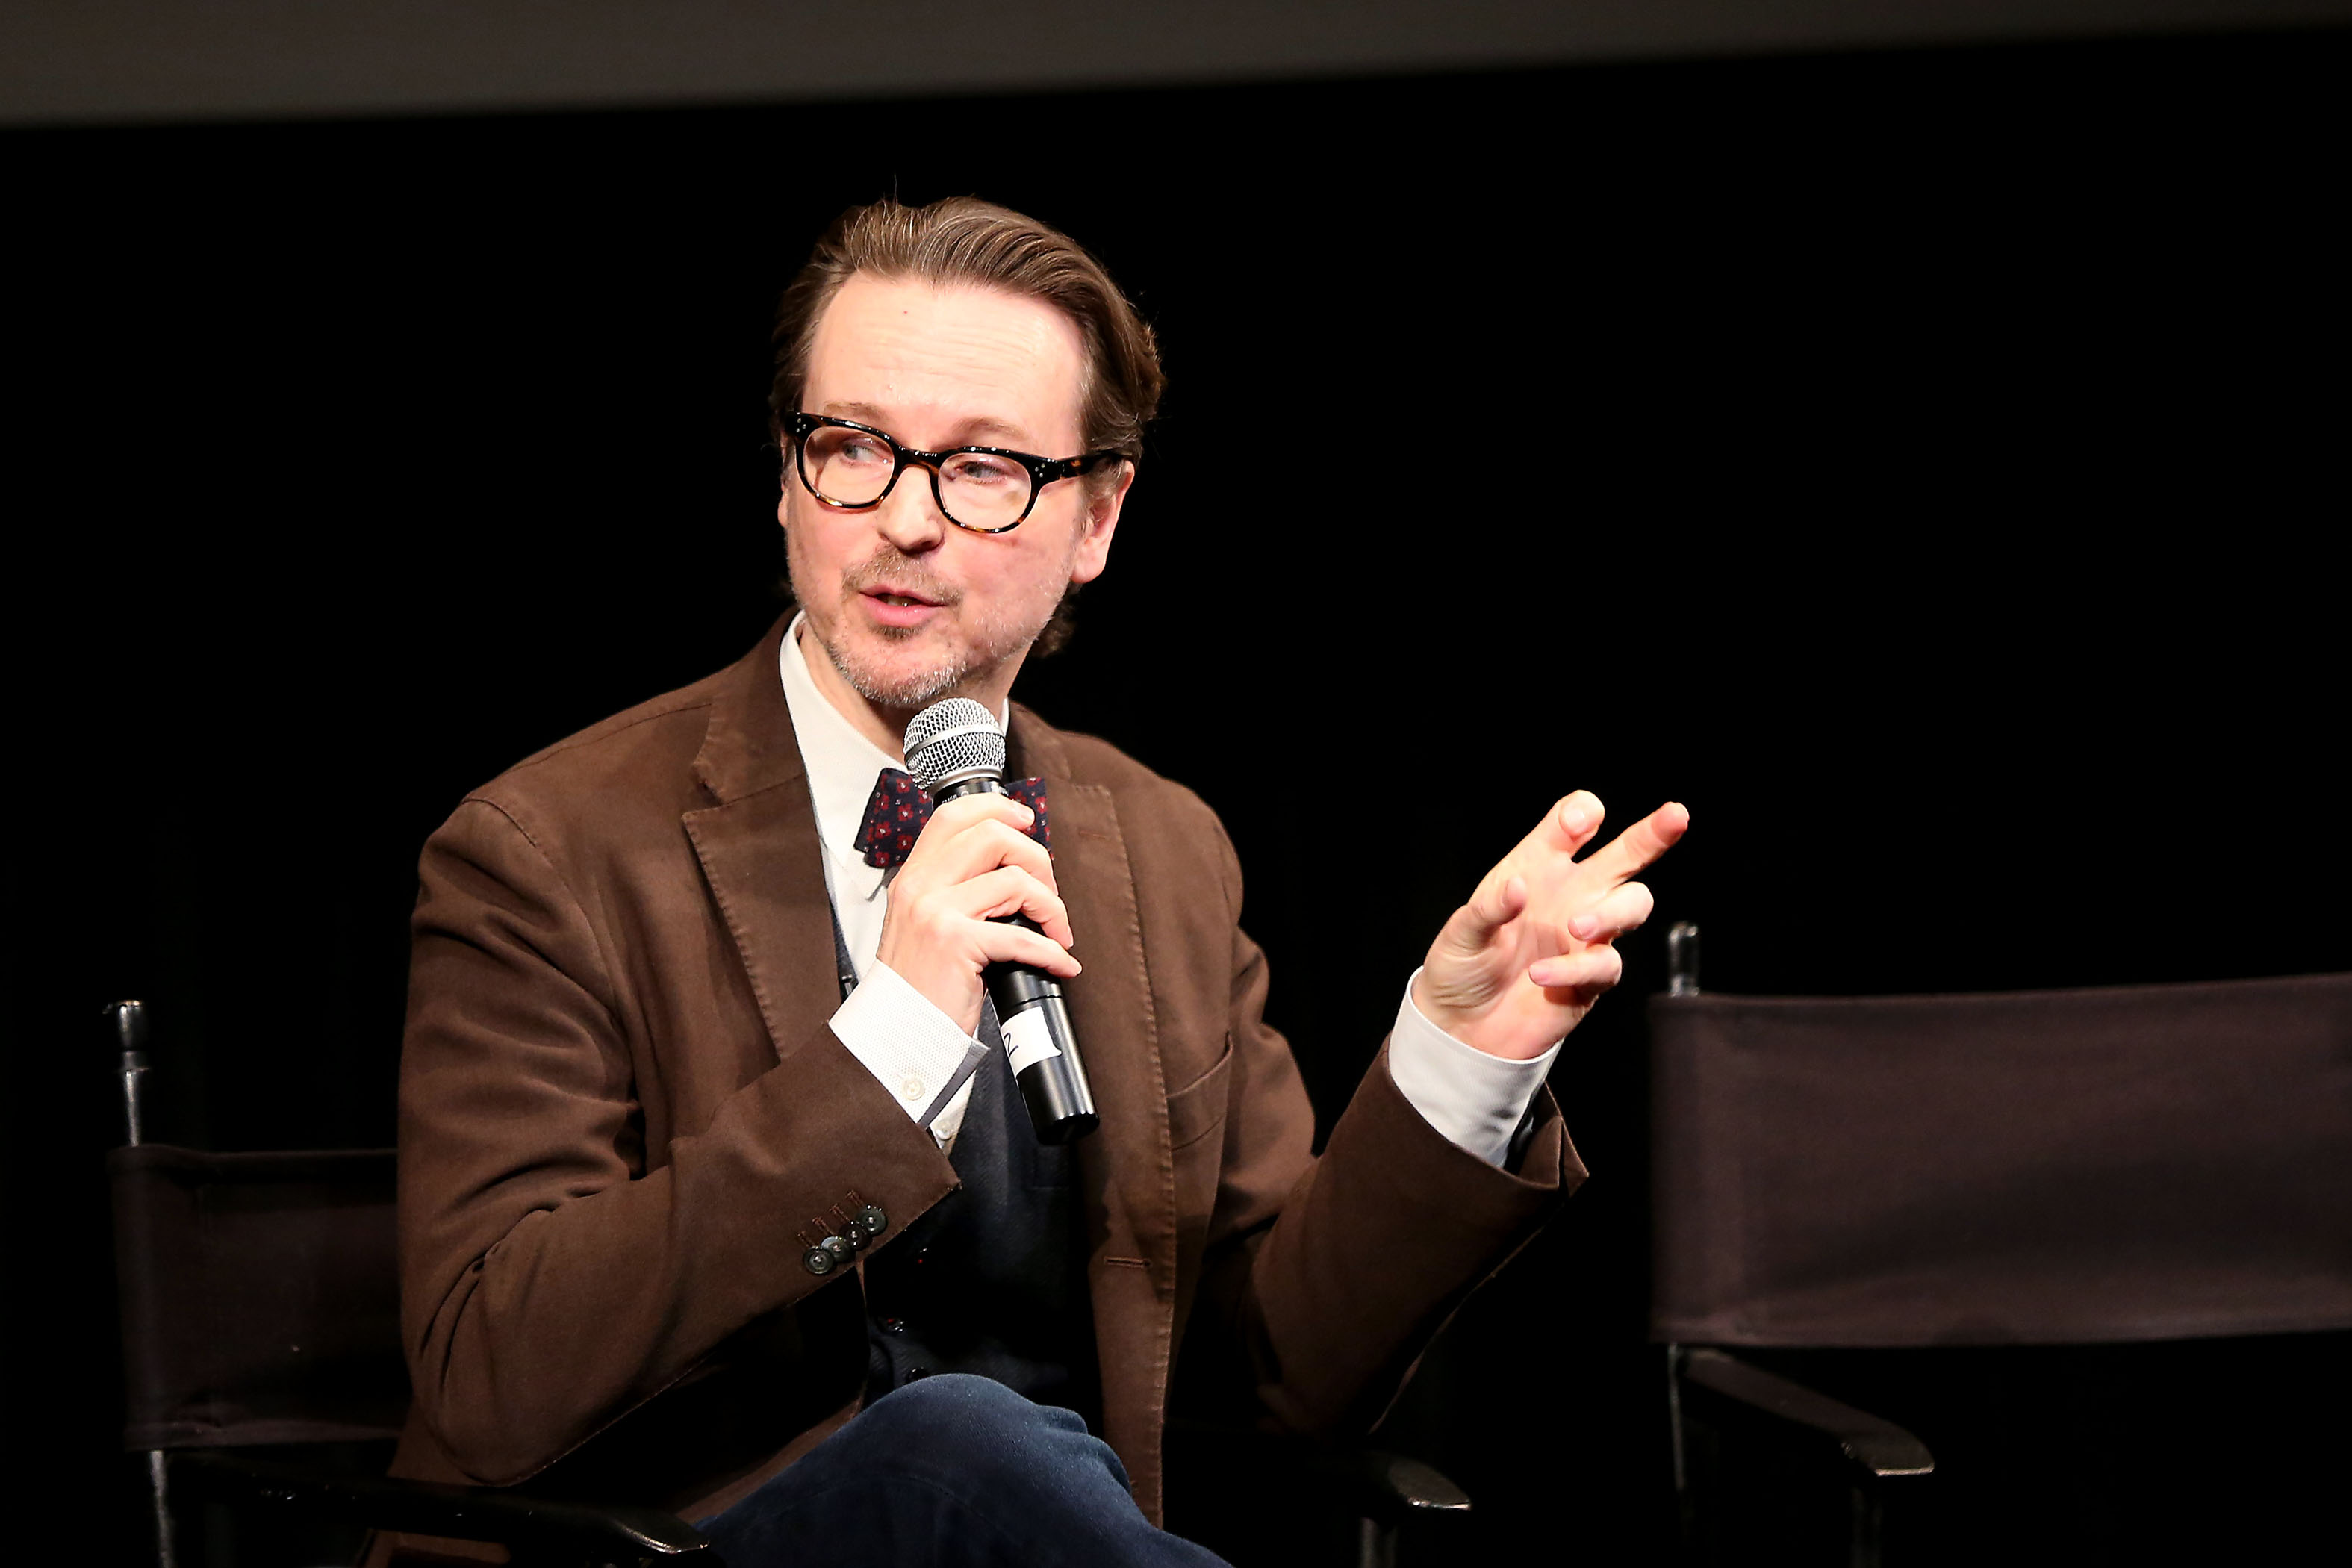 Matt Reeves20th Century Fox New Year Presentation - War for the Planet of the Apes, New York, USA - 08 Dec 2016